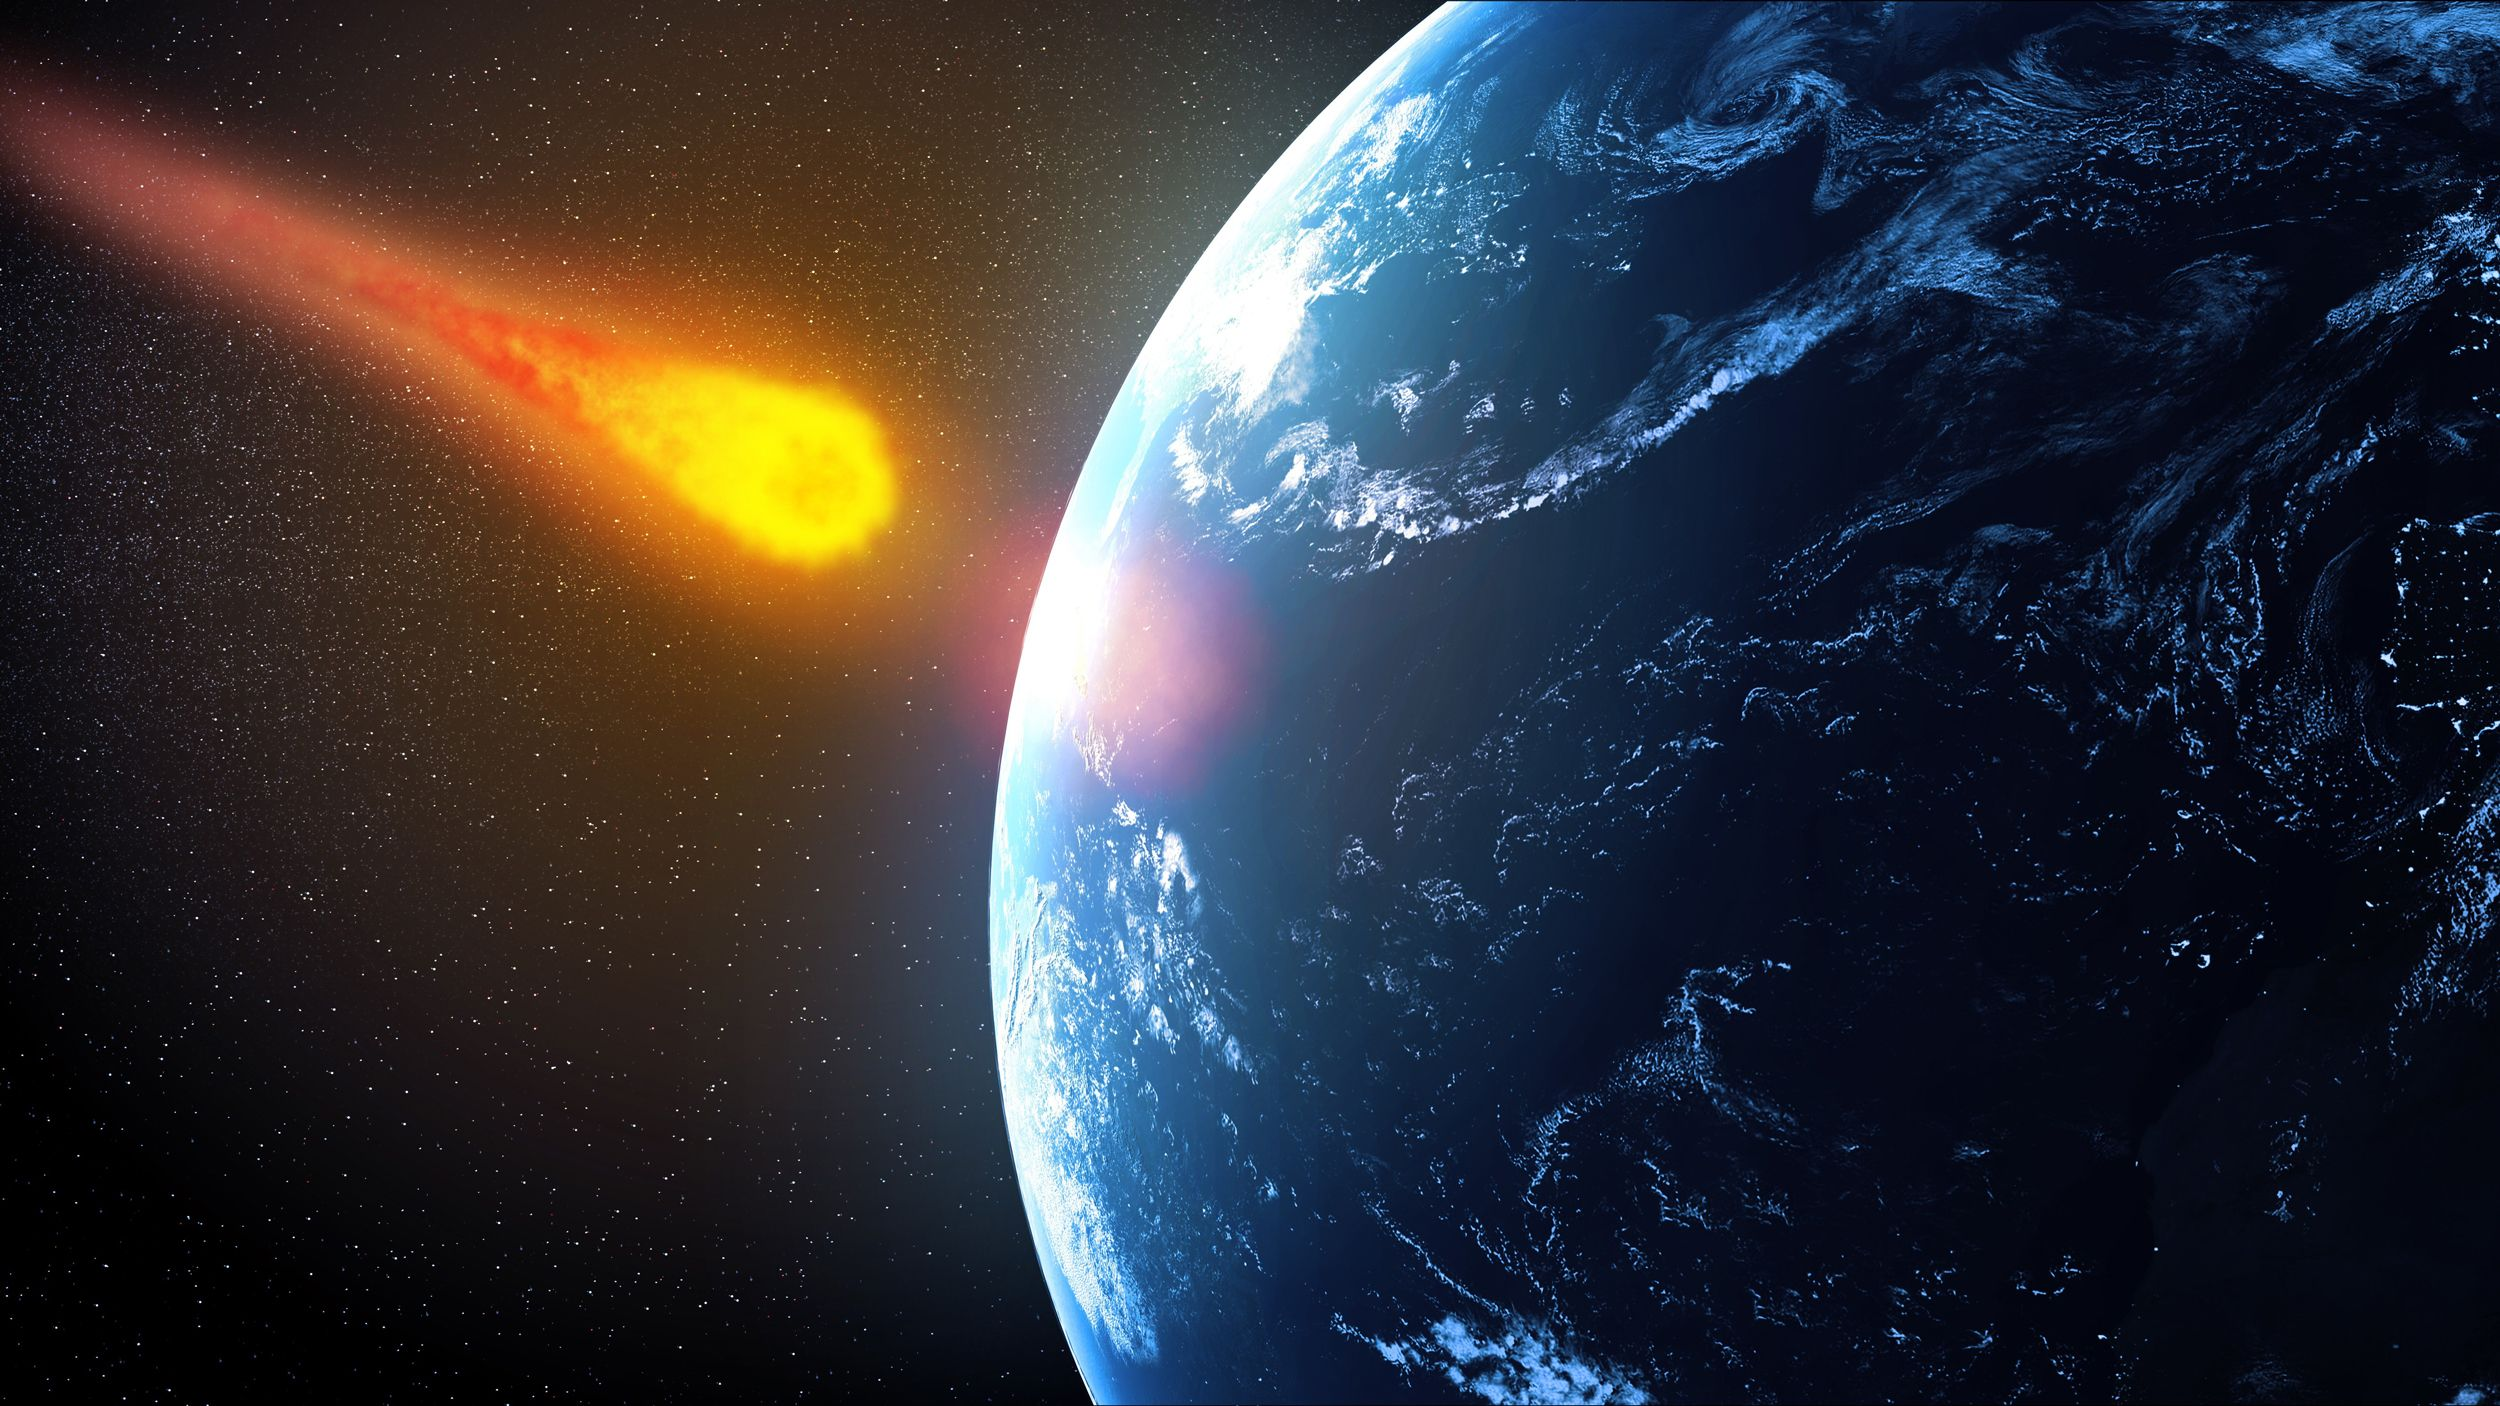 15-meter asteroid missed the Earth 31